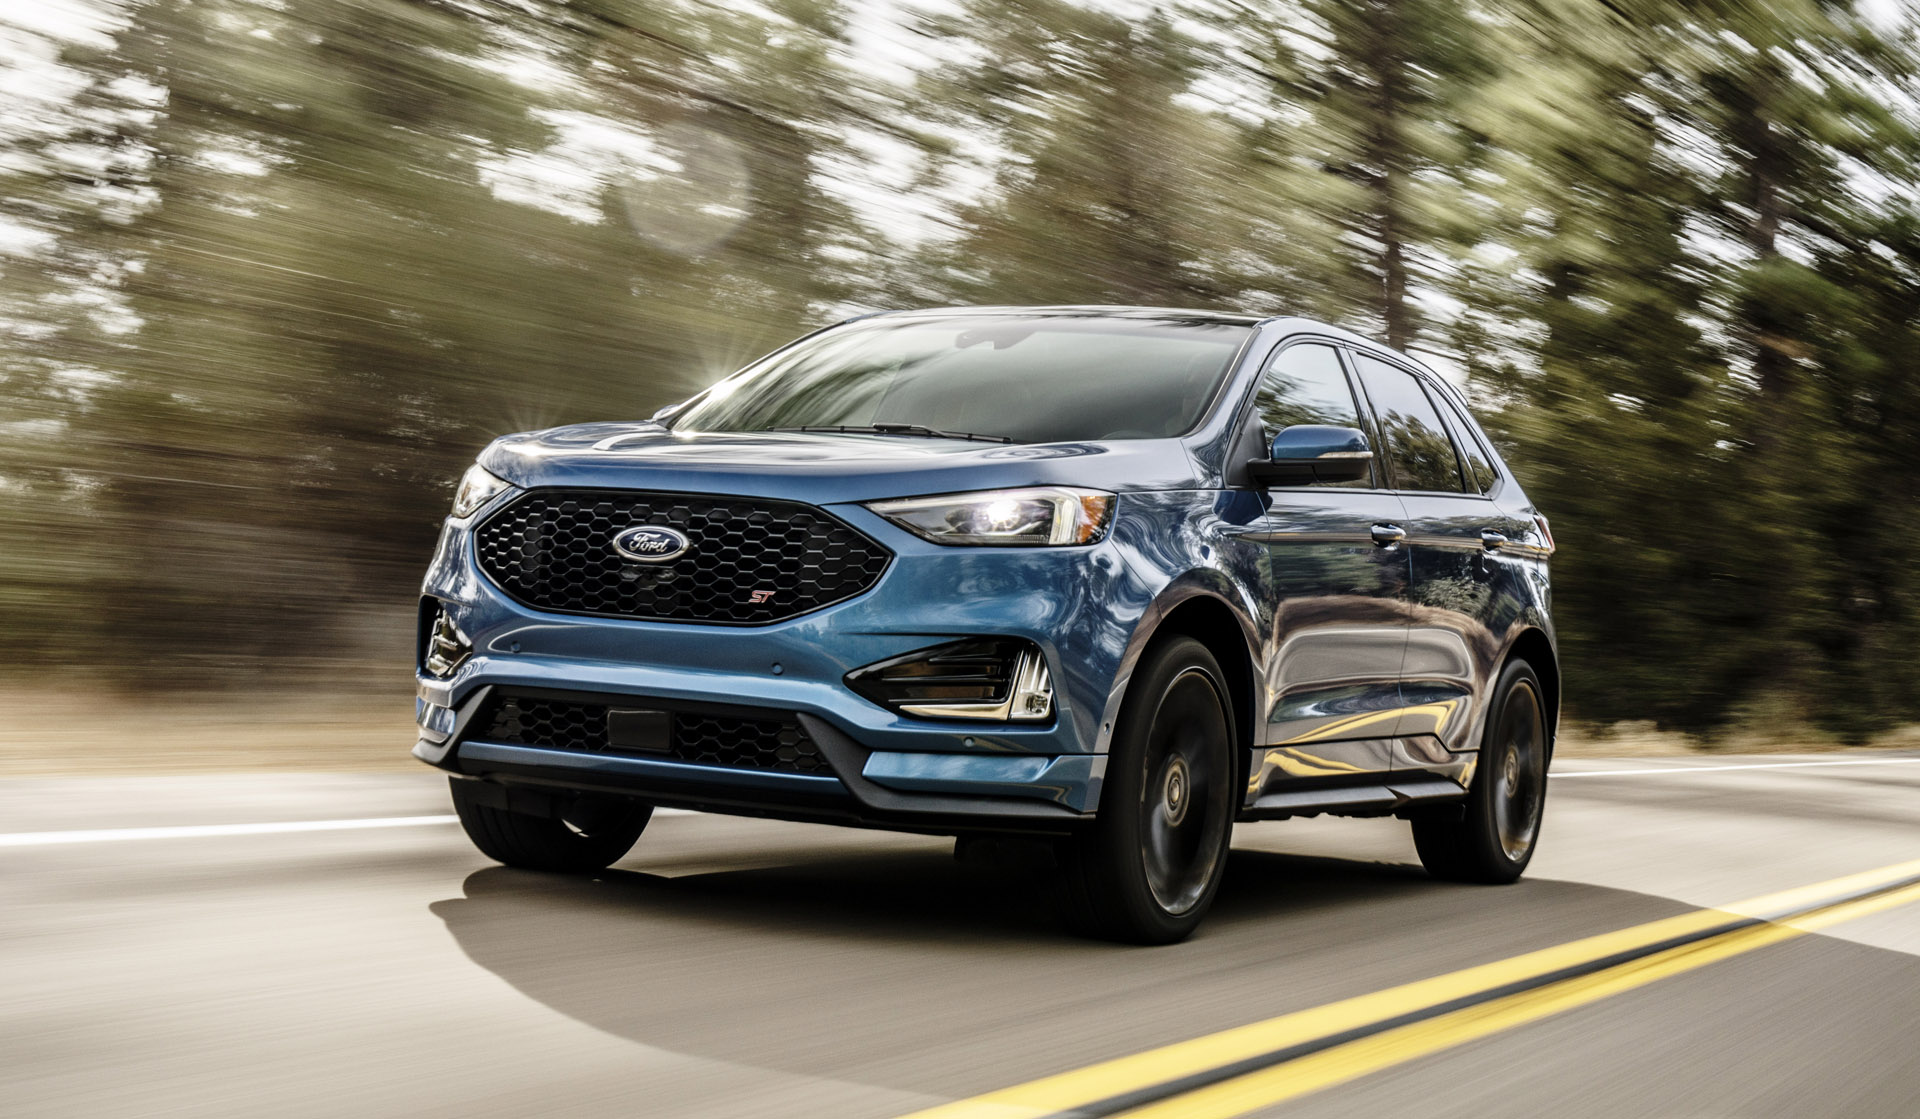 Hot crossover 2019 ford edge st to cost 43350